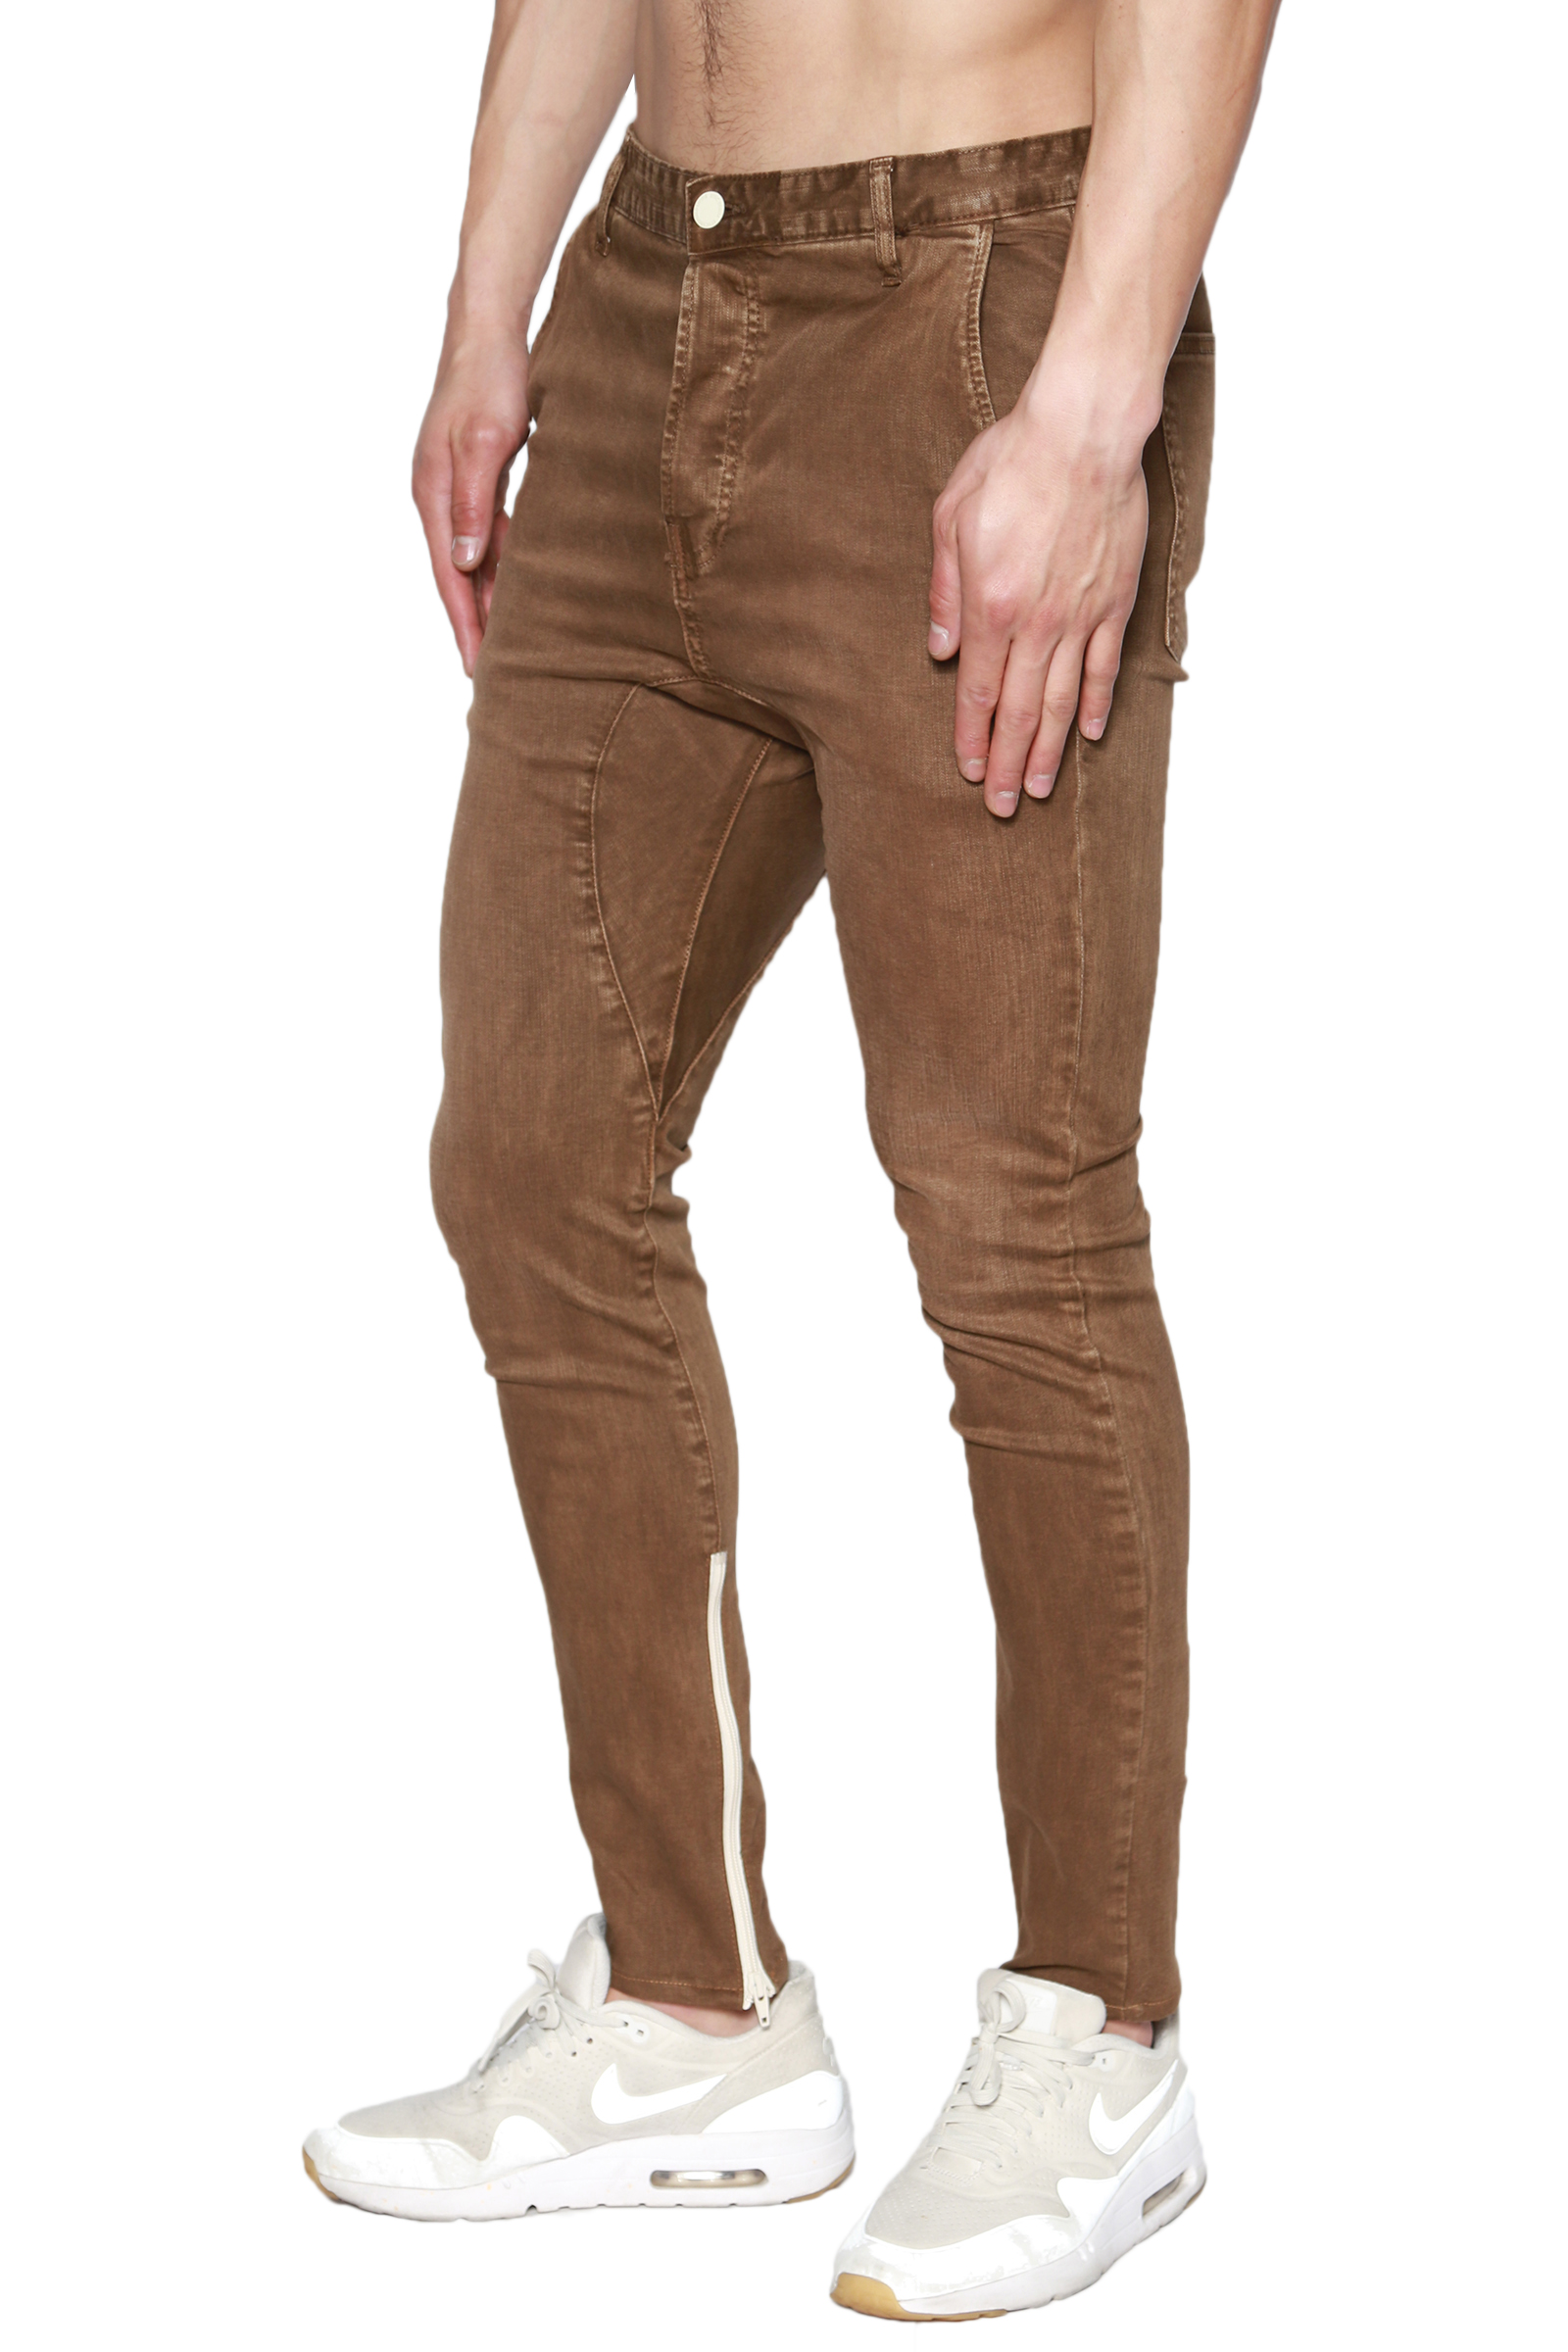 TheMogan Men's Ankle Zipper Drop Low Crotch Baggy Skinny Jeans USA